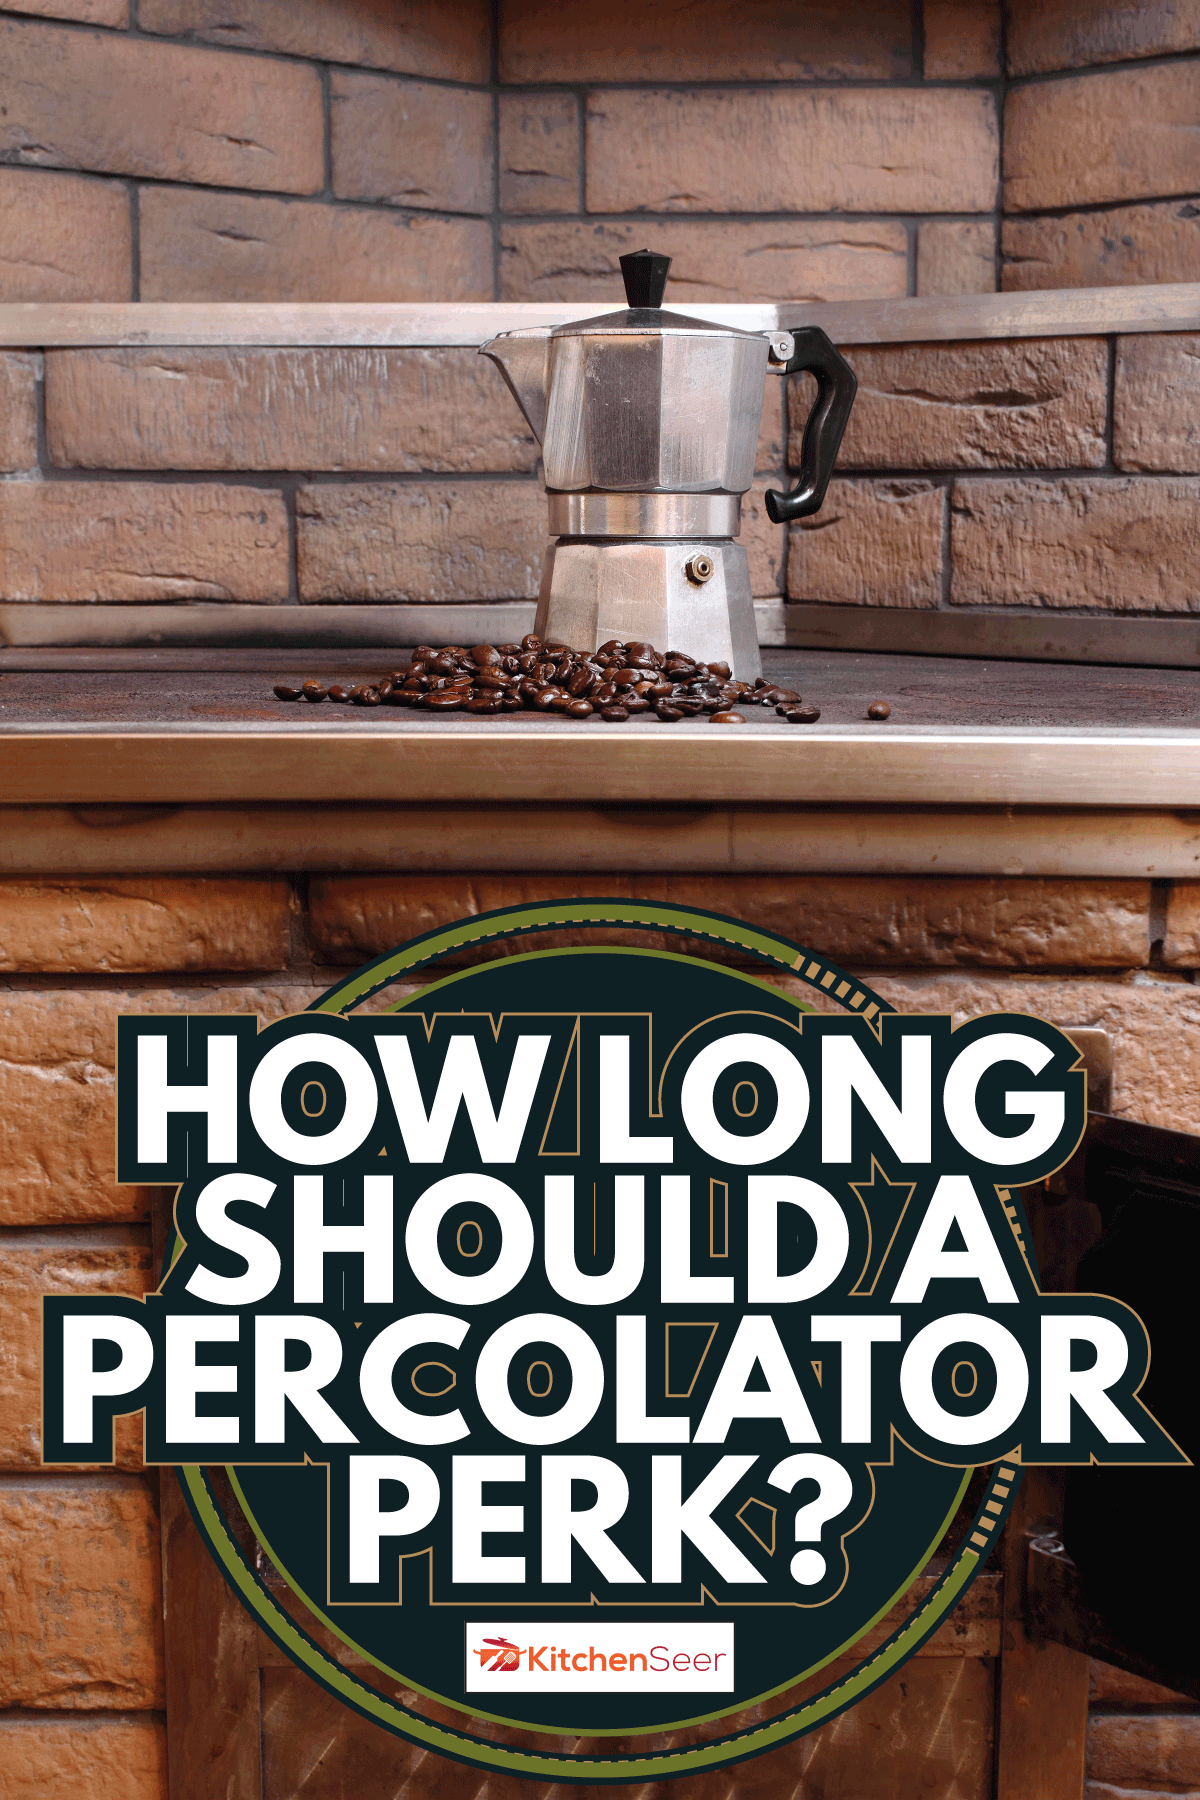 Moka pot, coffee beans and open fire in oven. How Long Should A Percolator Perk